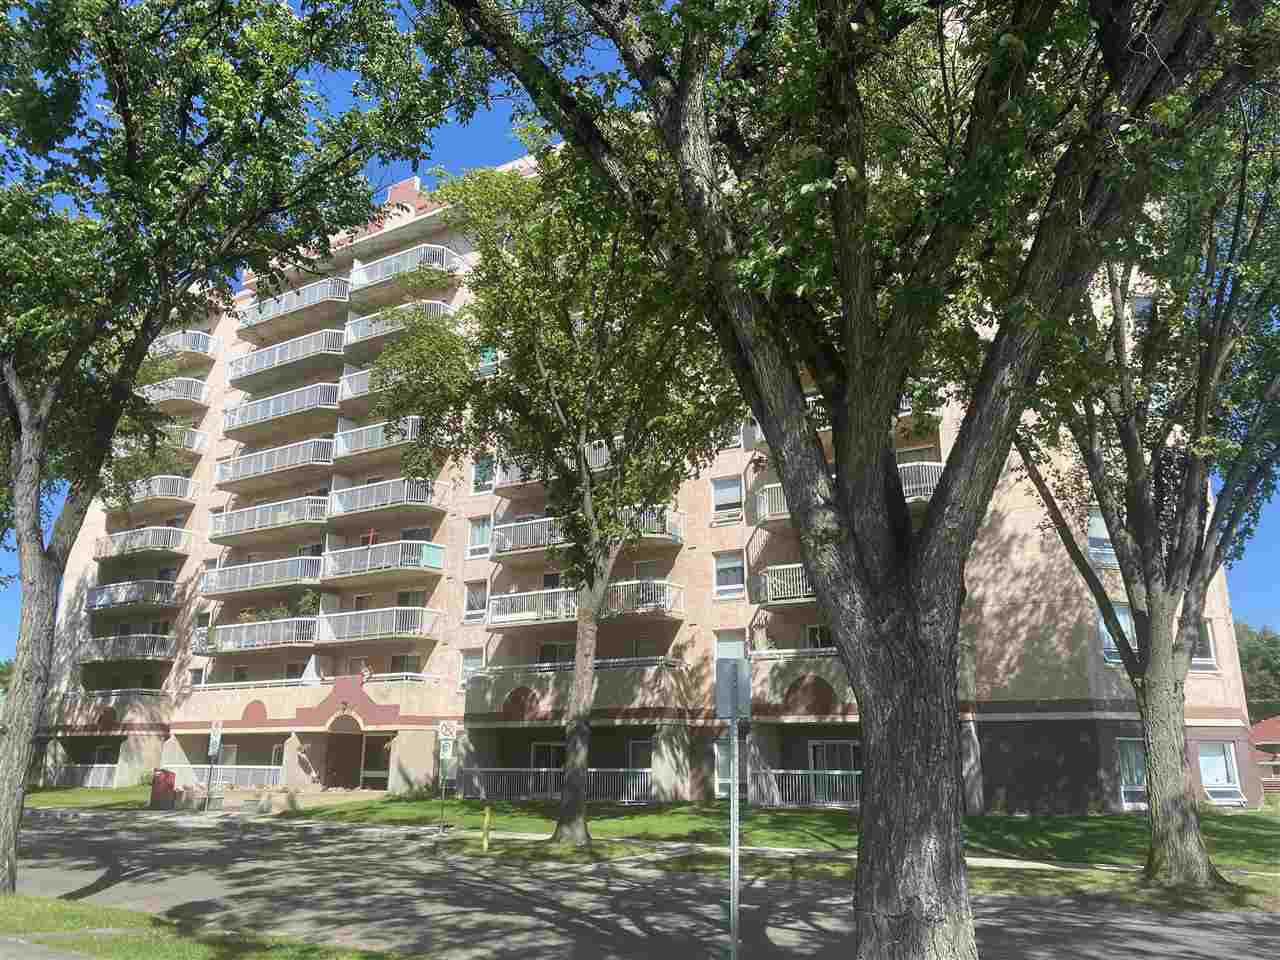 Main Photo: 603 11211 85 Street in Edmonton: Zone 05 Condo for sale : MLS®# E4194734